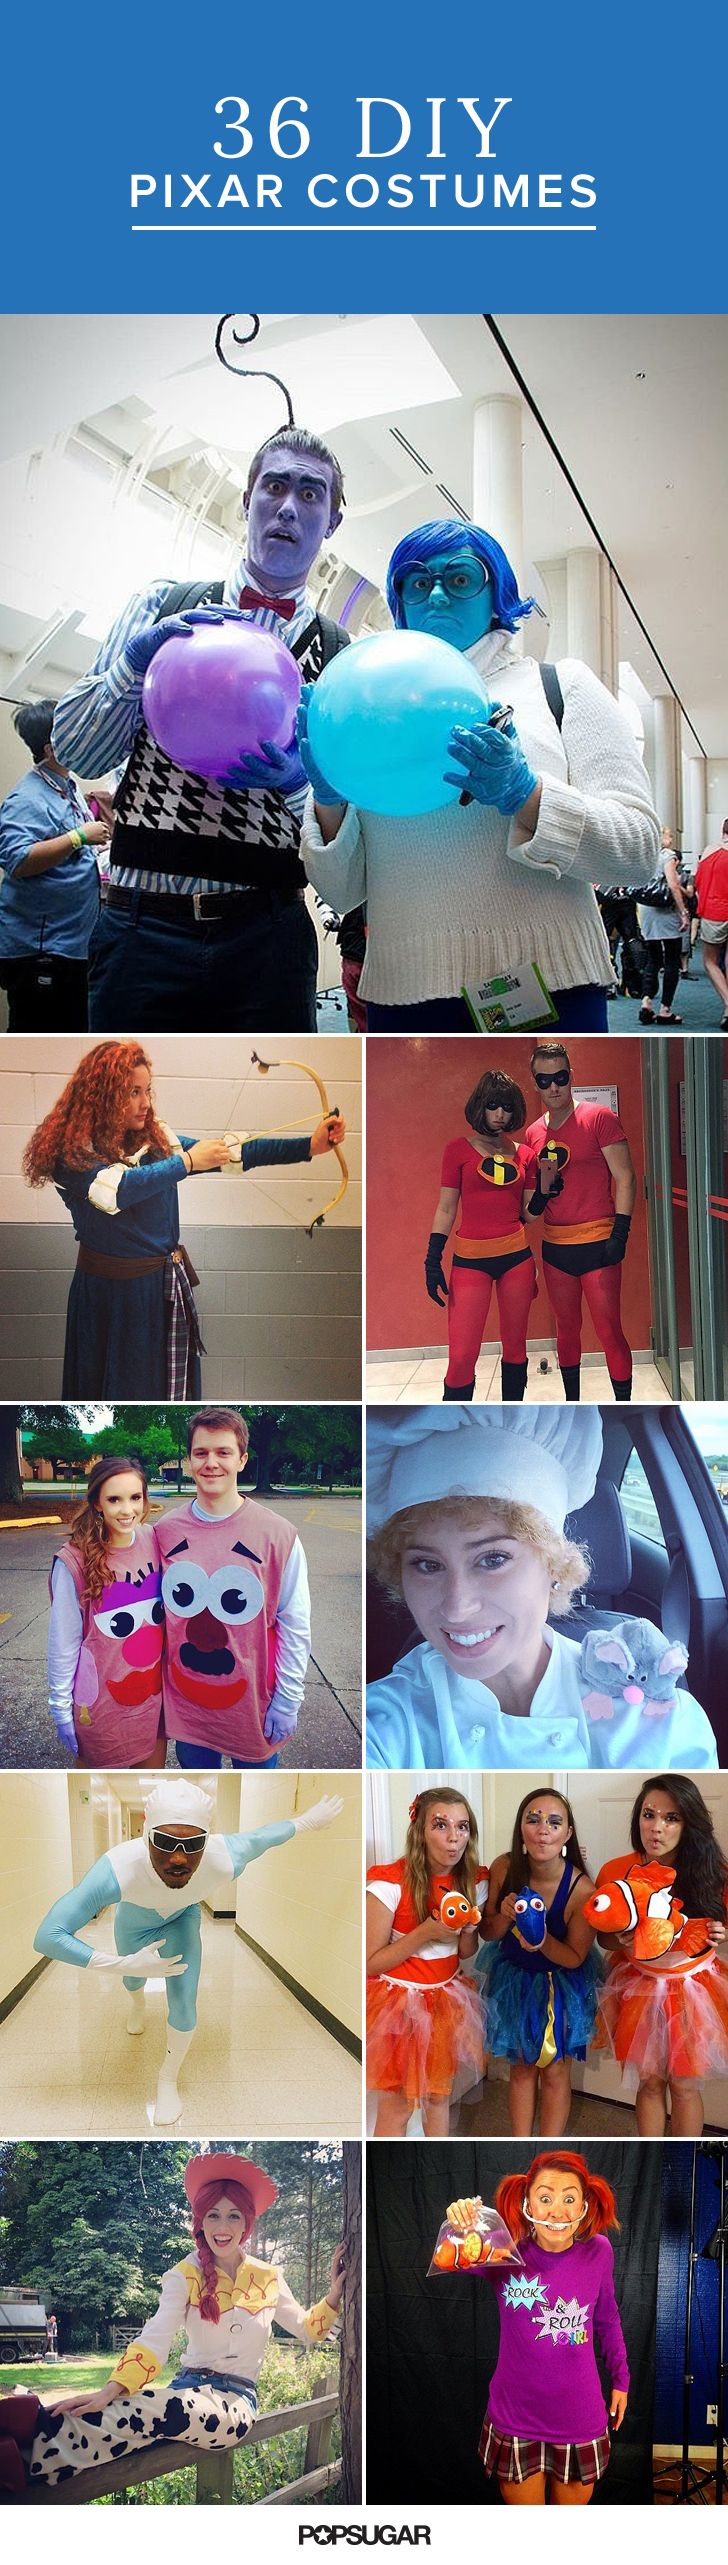 It's easy to become seriously obsessed with Pixar. Some of our favorite movies from the past 20 years have come out of the animation studio. If you're a true fan, you'll want to dress up like your favorite characters from Pixar movies. Check out these awesome costume ideas that are incredibly easy to DIY all on your own. The best part? They won't cost you much to re-create.